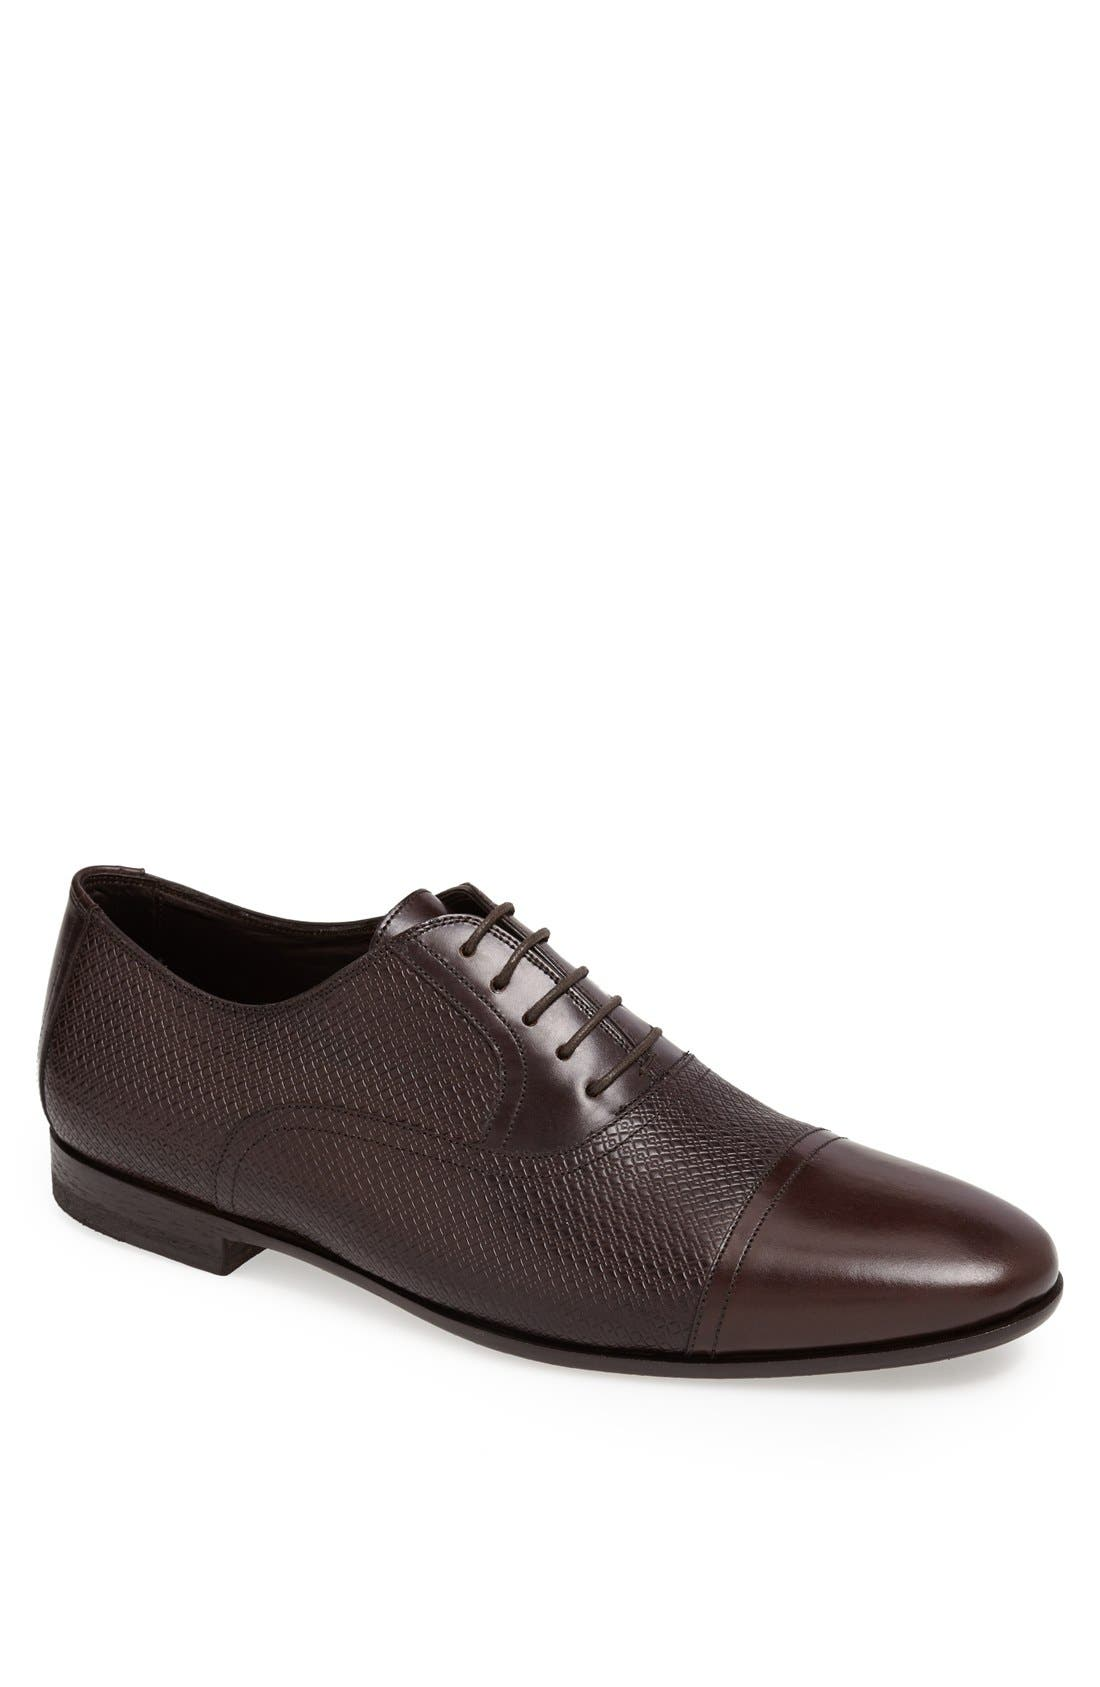 Main Image - Canali Cap Toe Oxford (Men)